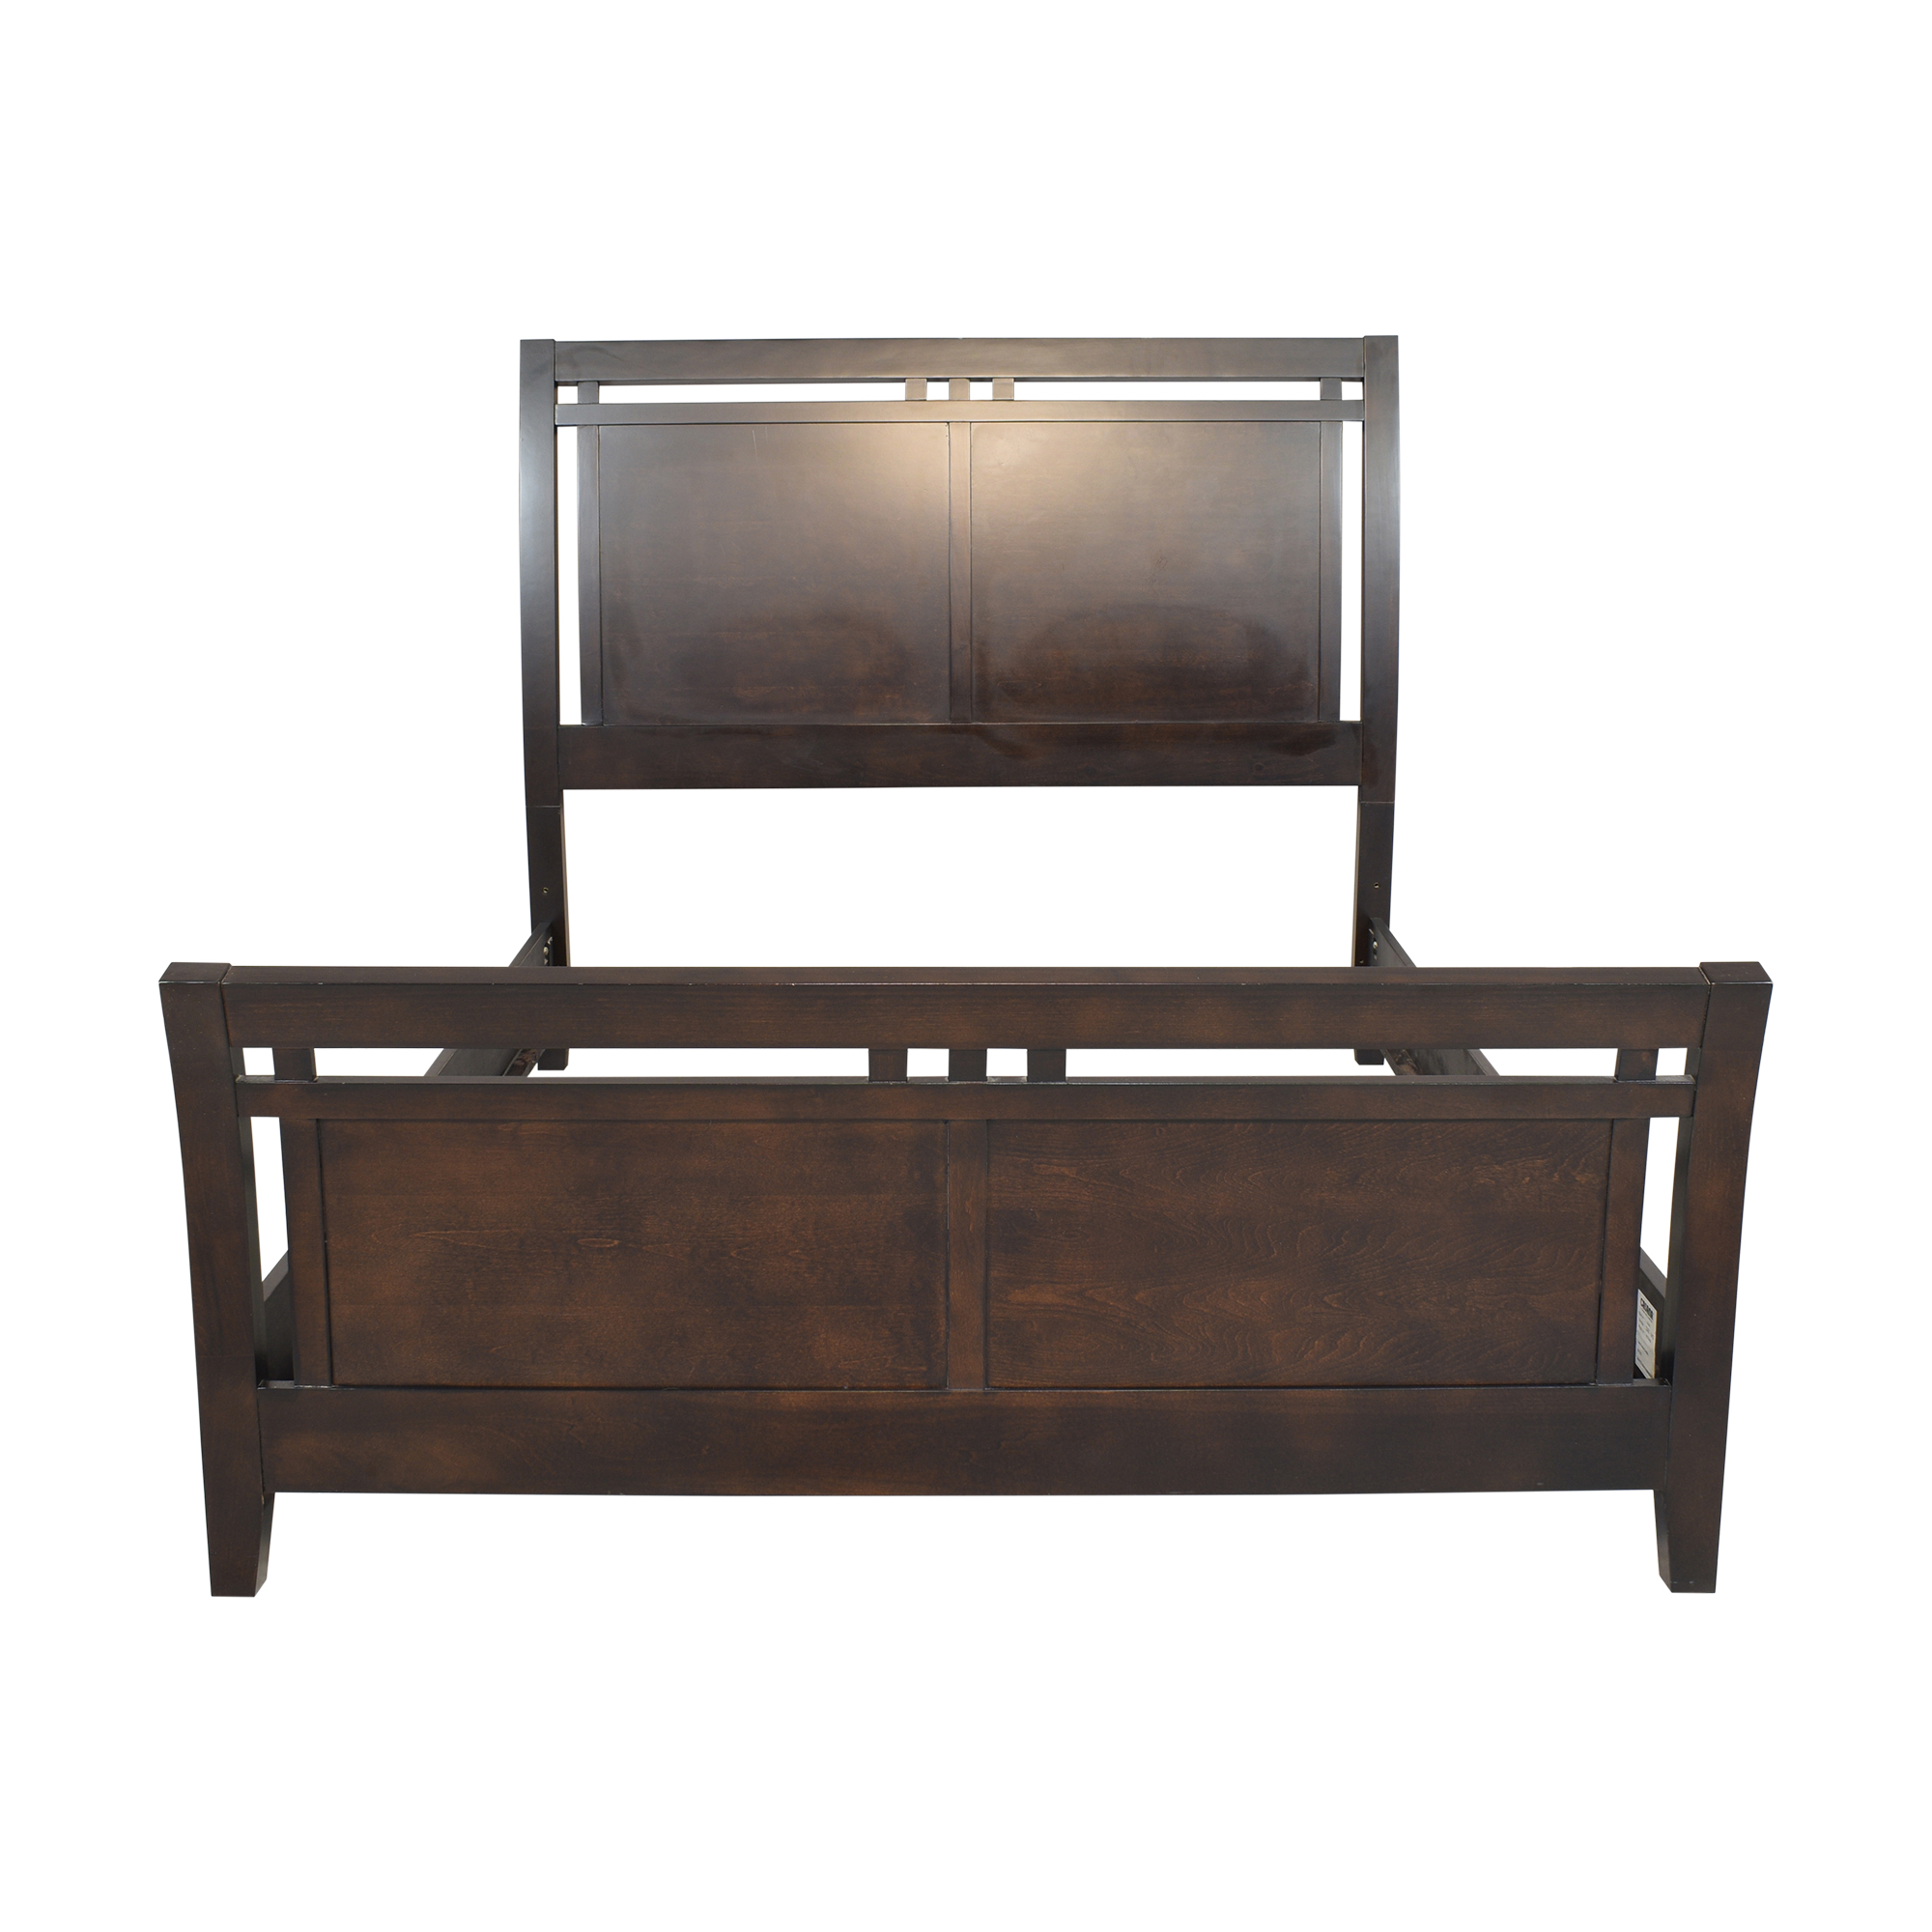 Raymour & Flanigan Raymour & Flanigan Queen Newport Sleigh Bed Beds